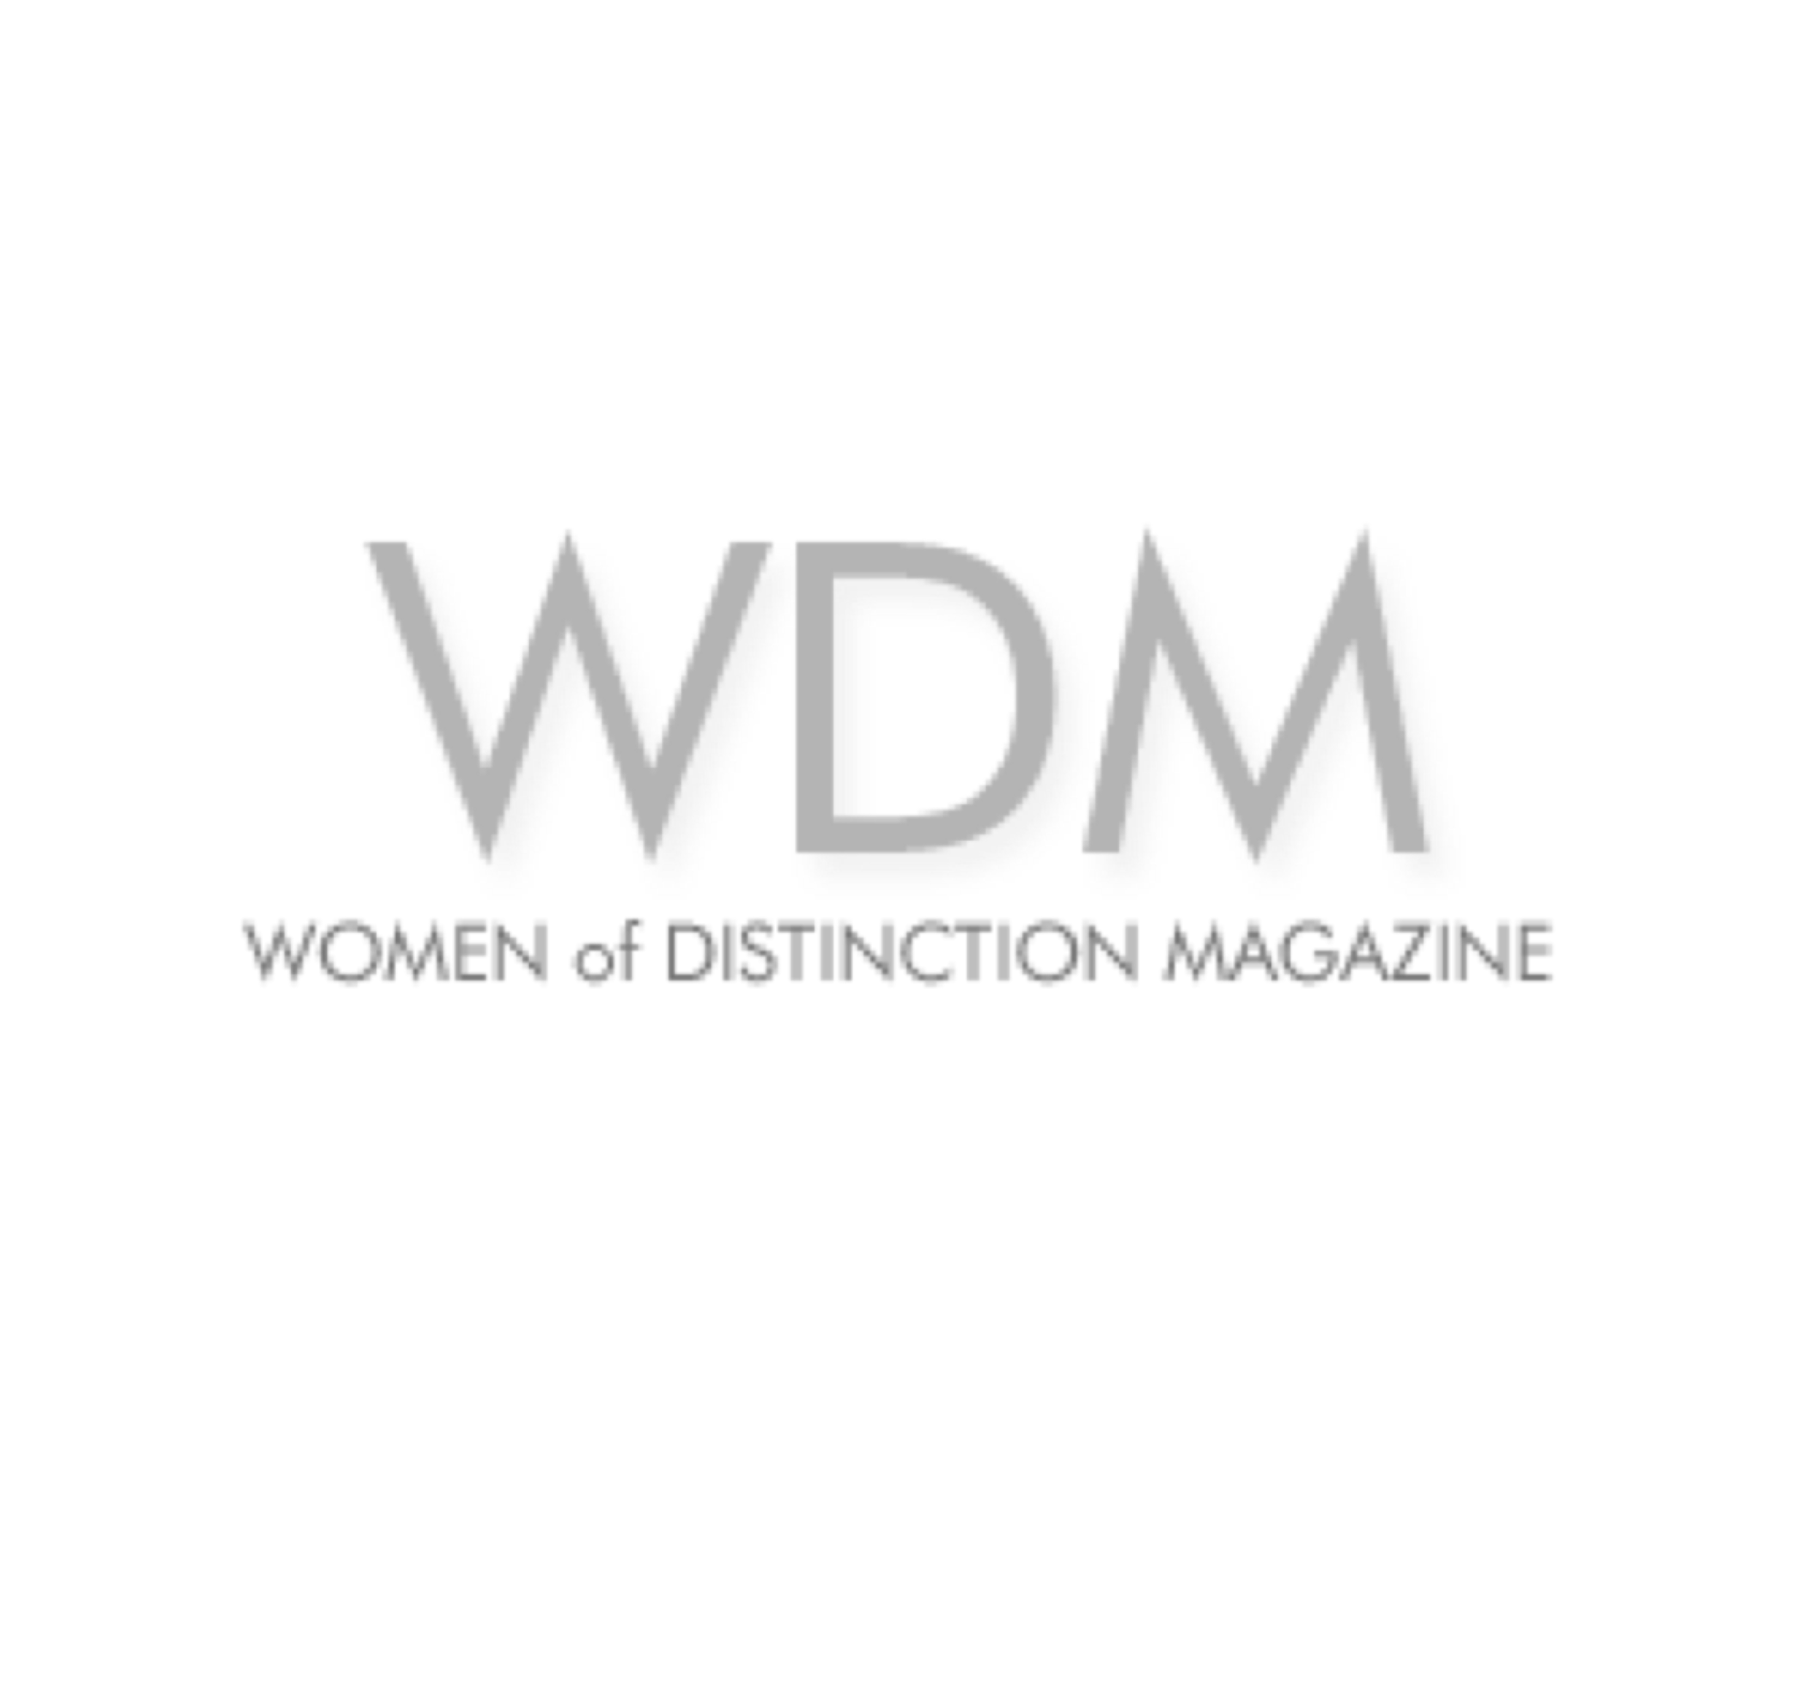 Women of Distinction Magazine